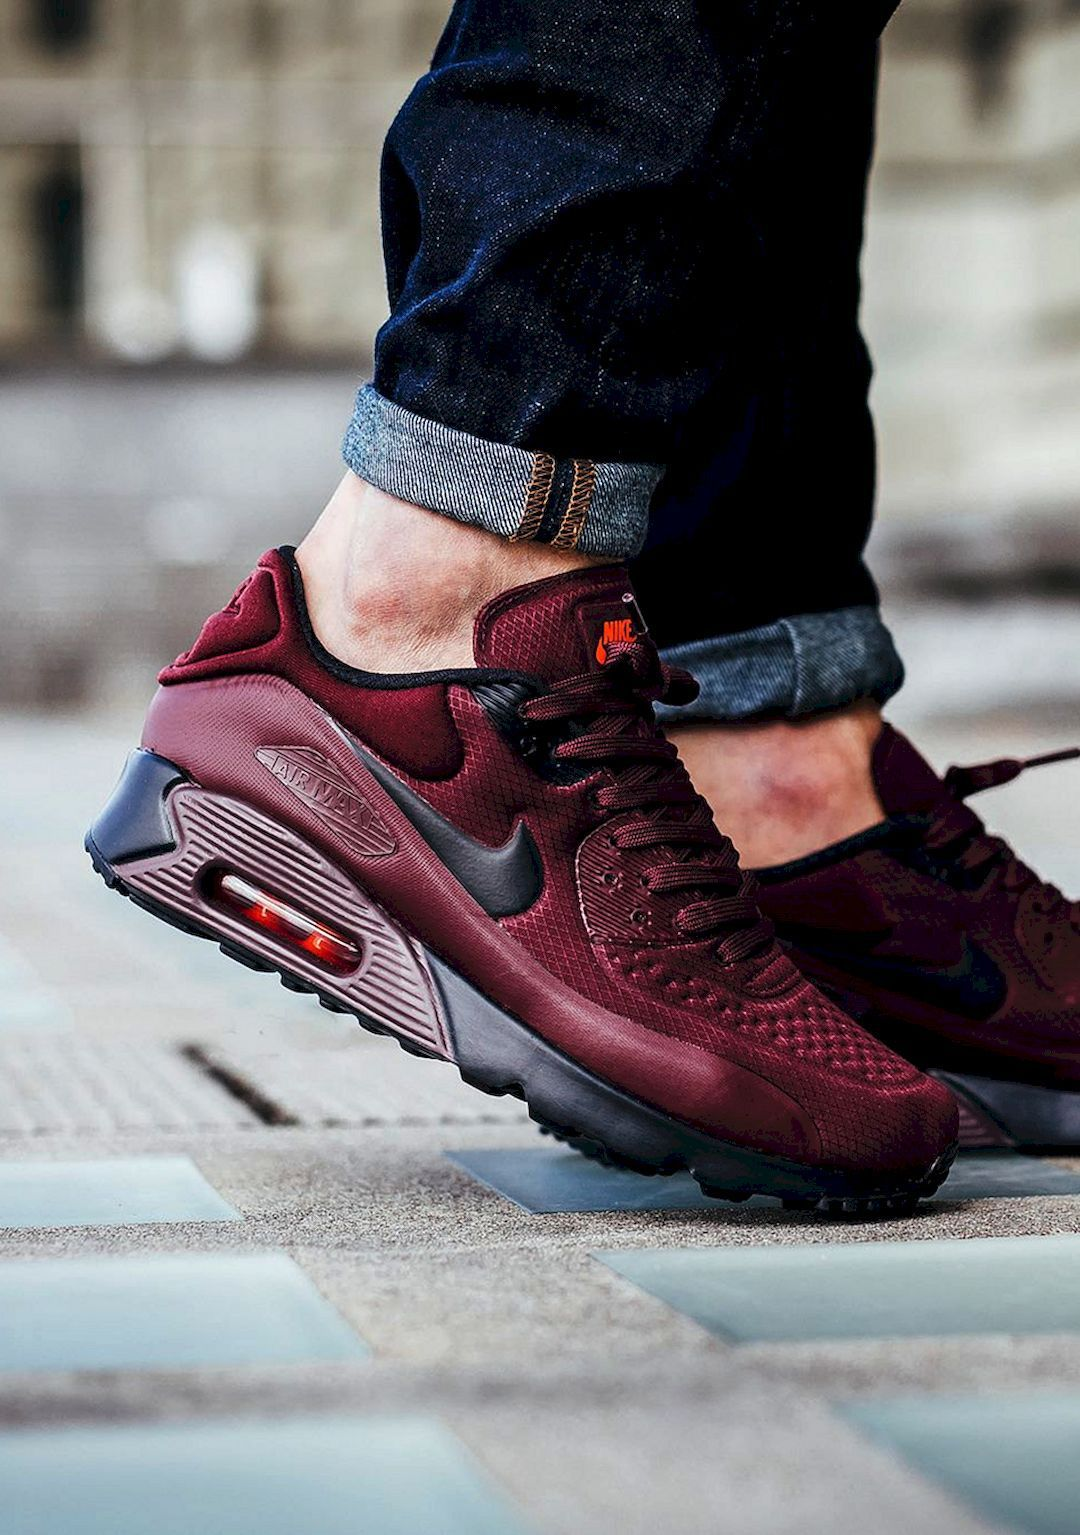 super specials buy good reasonably priced Nike Air Max 270, New Air Max Line for Lifestyle | Chaussure homme ...